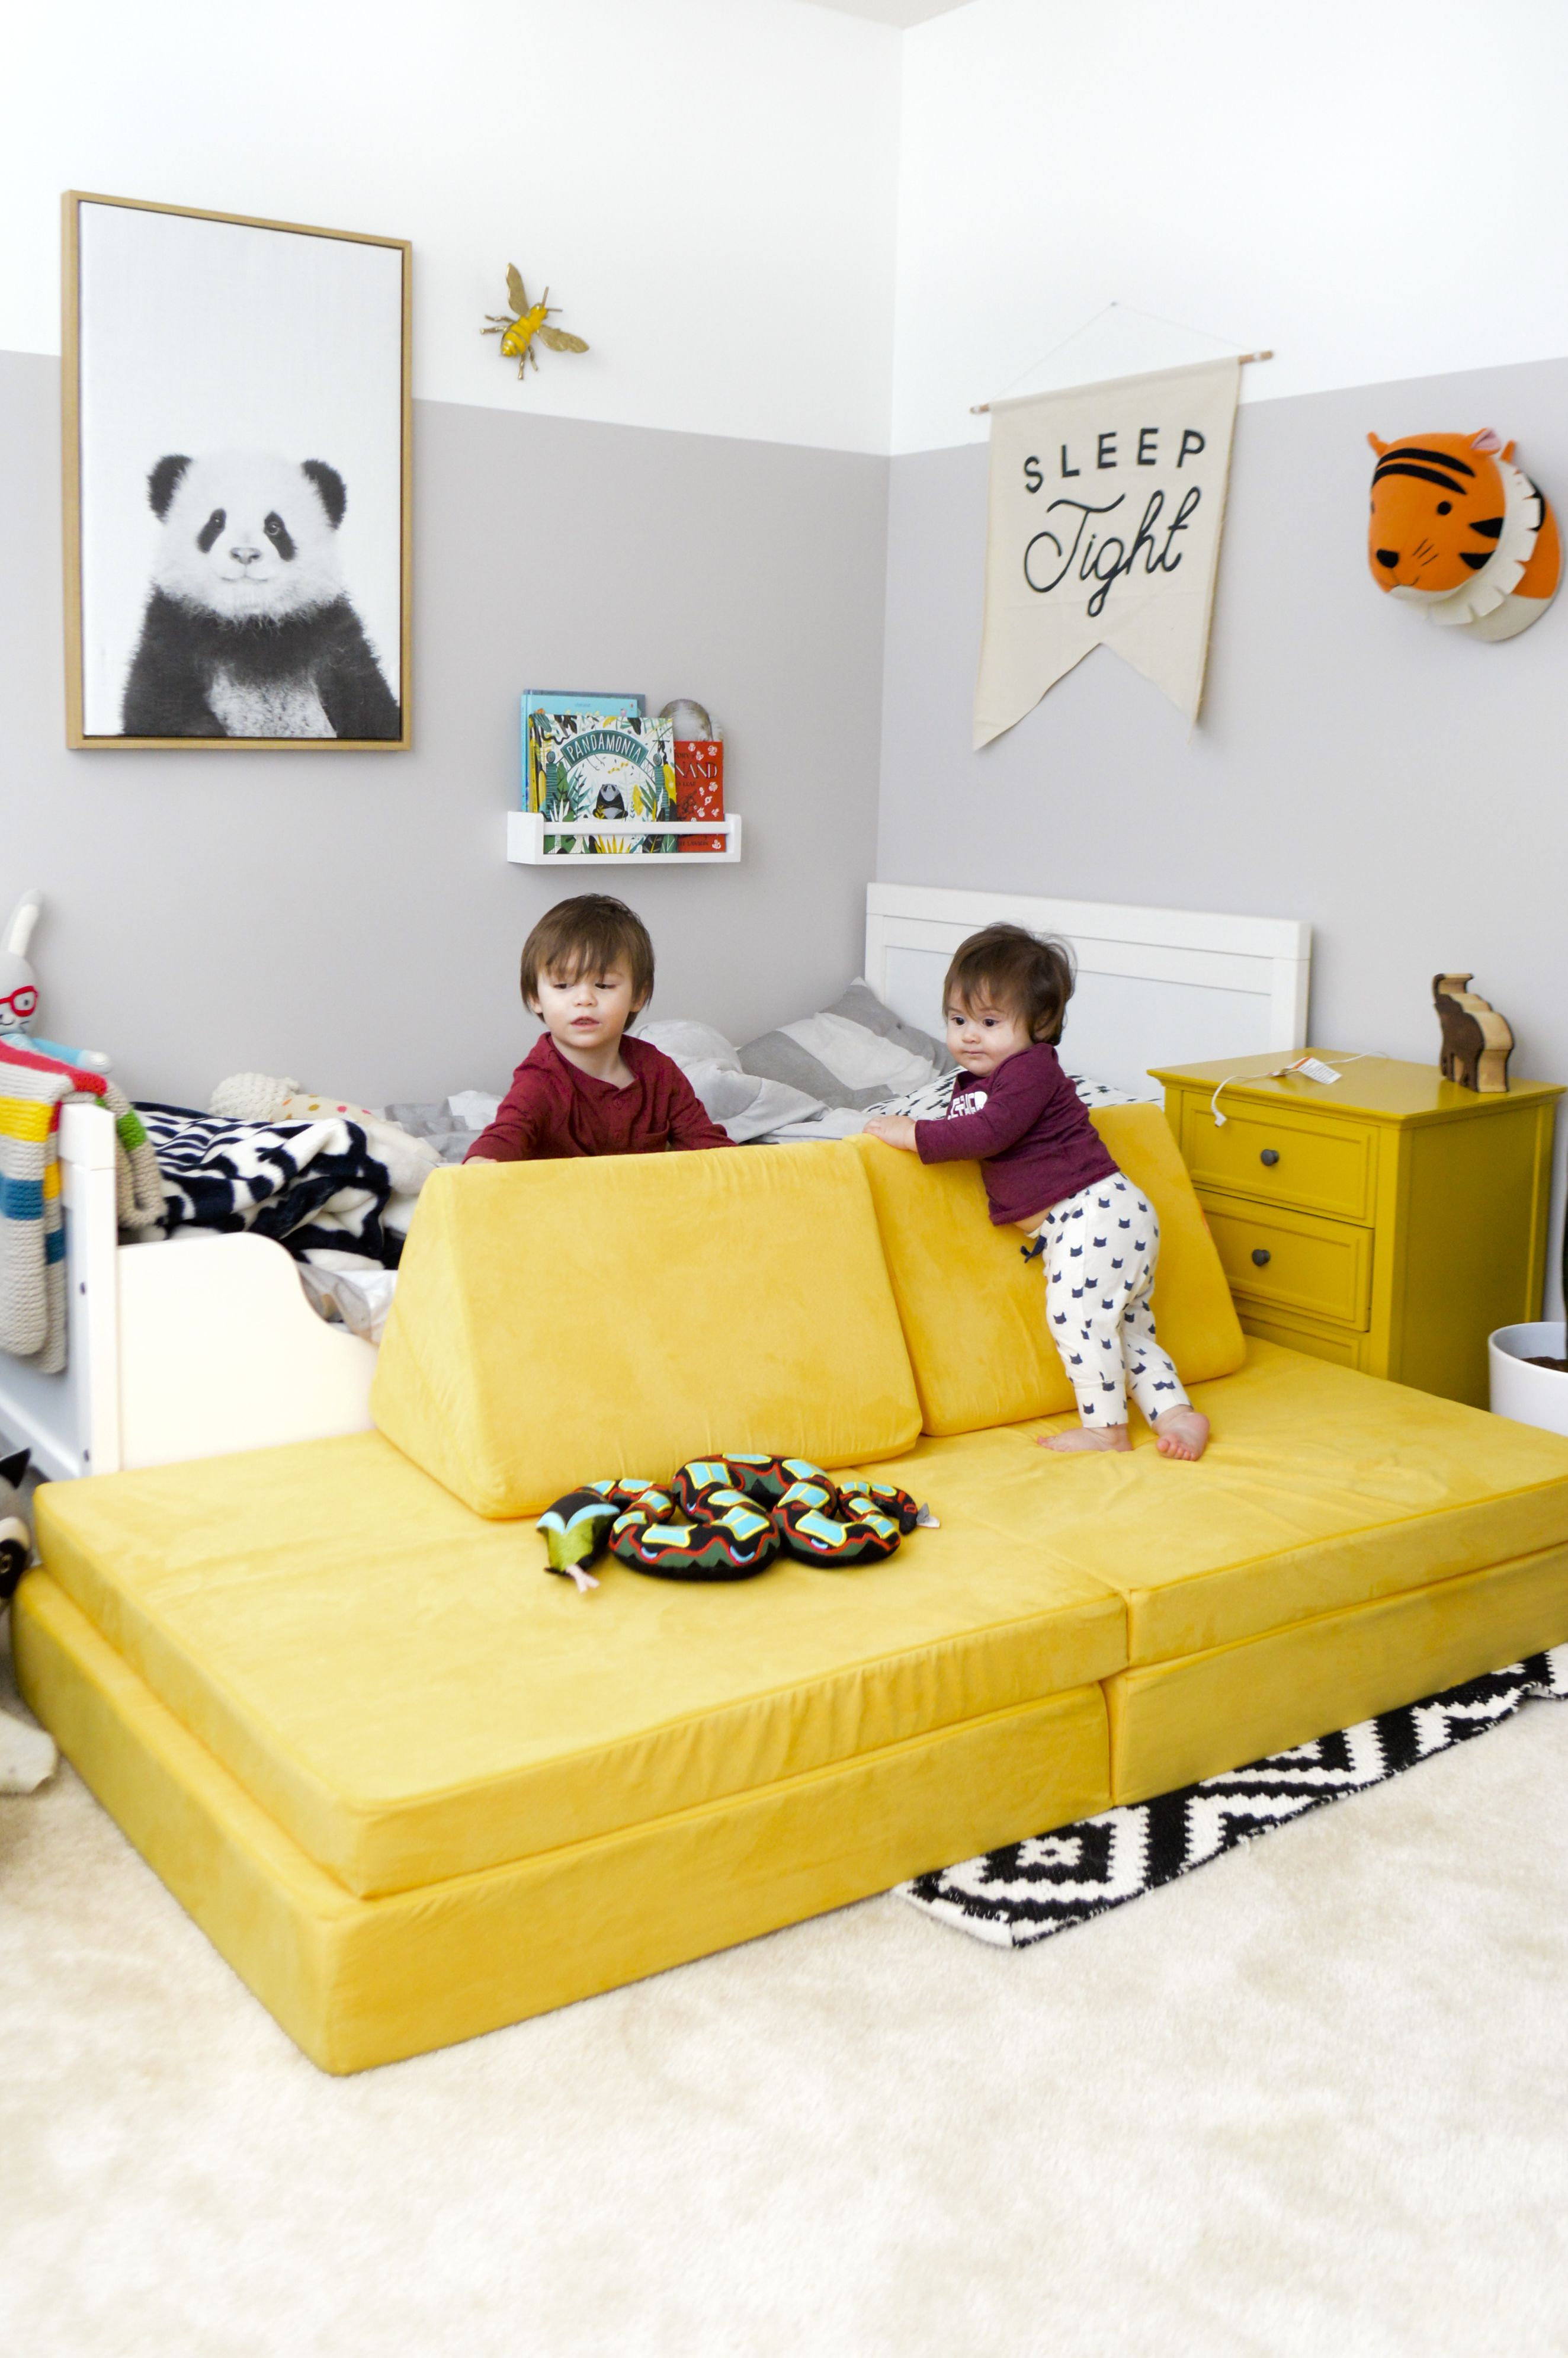 Nuggetcomfort Foamcouch Playroomcouch Playroom Kidsroom